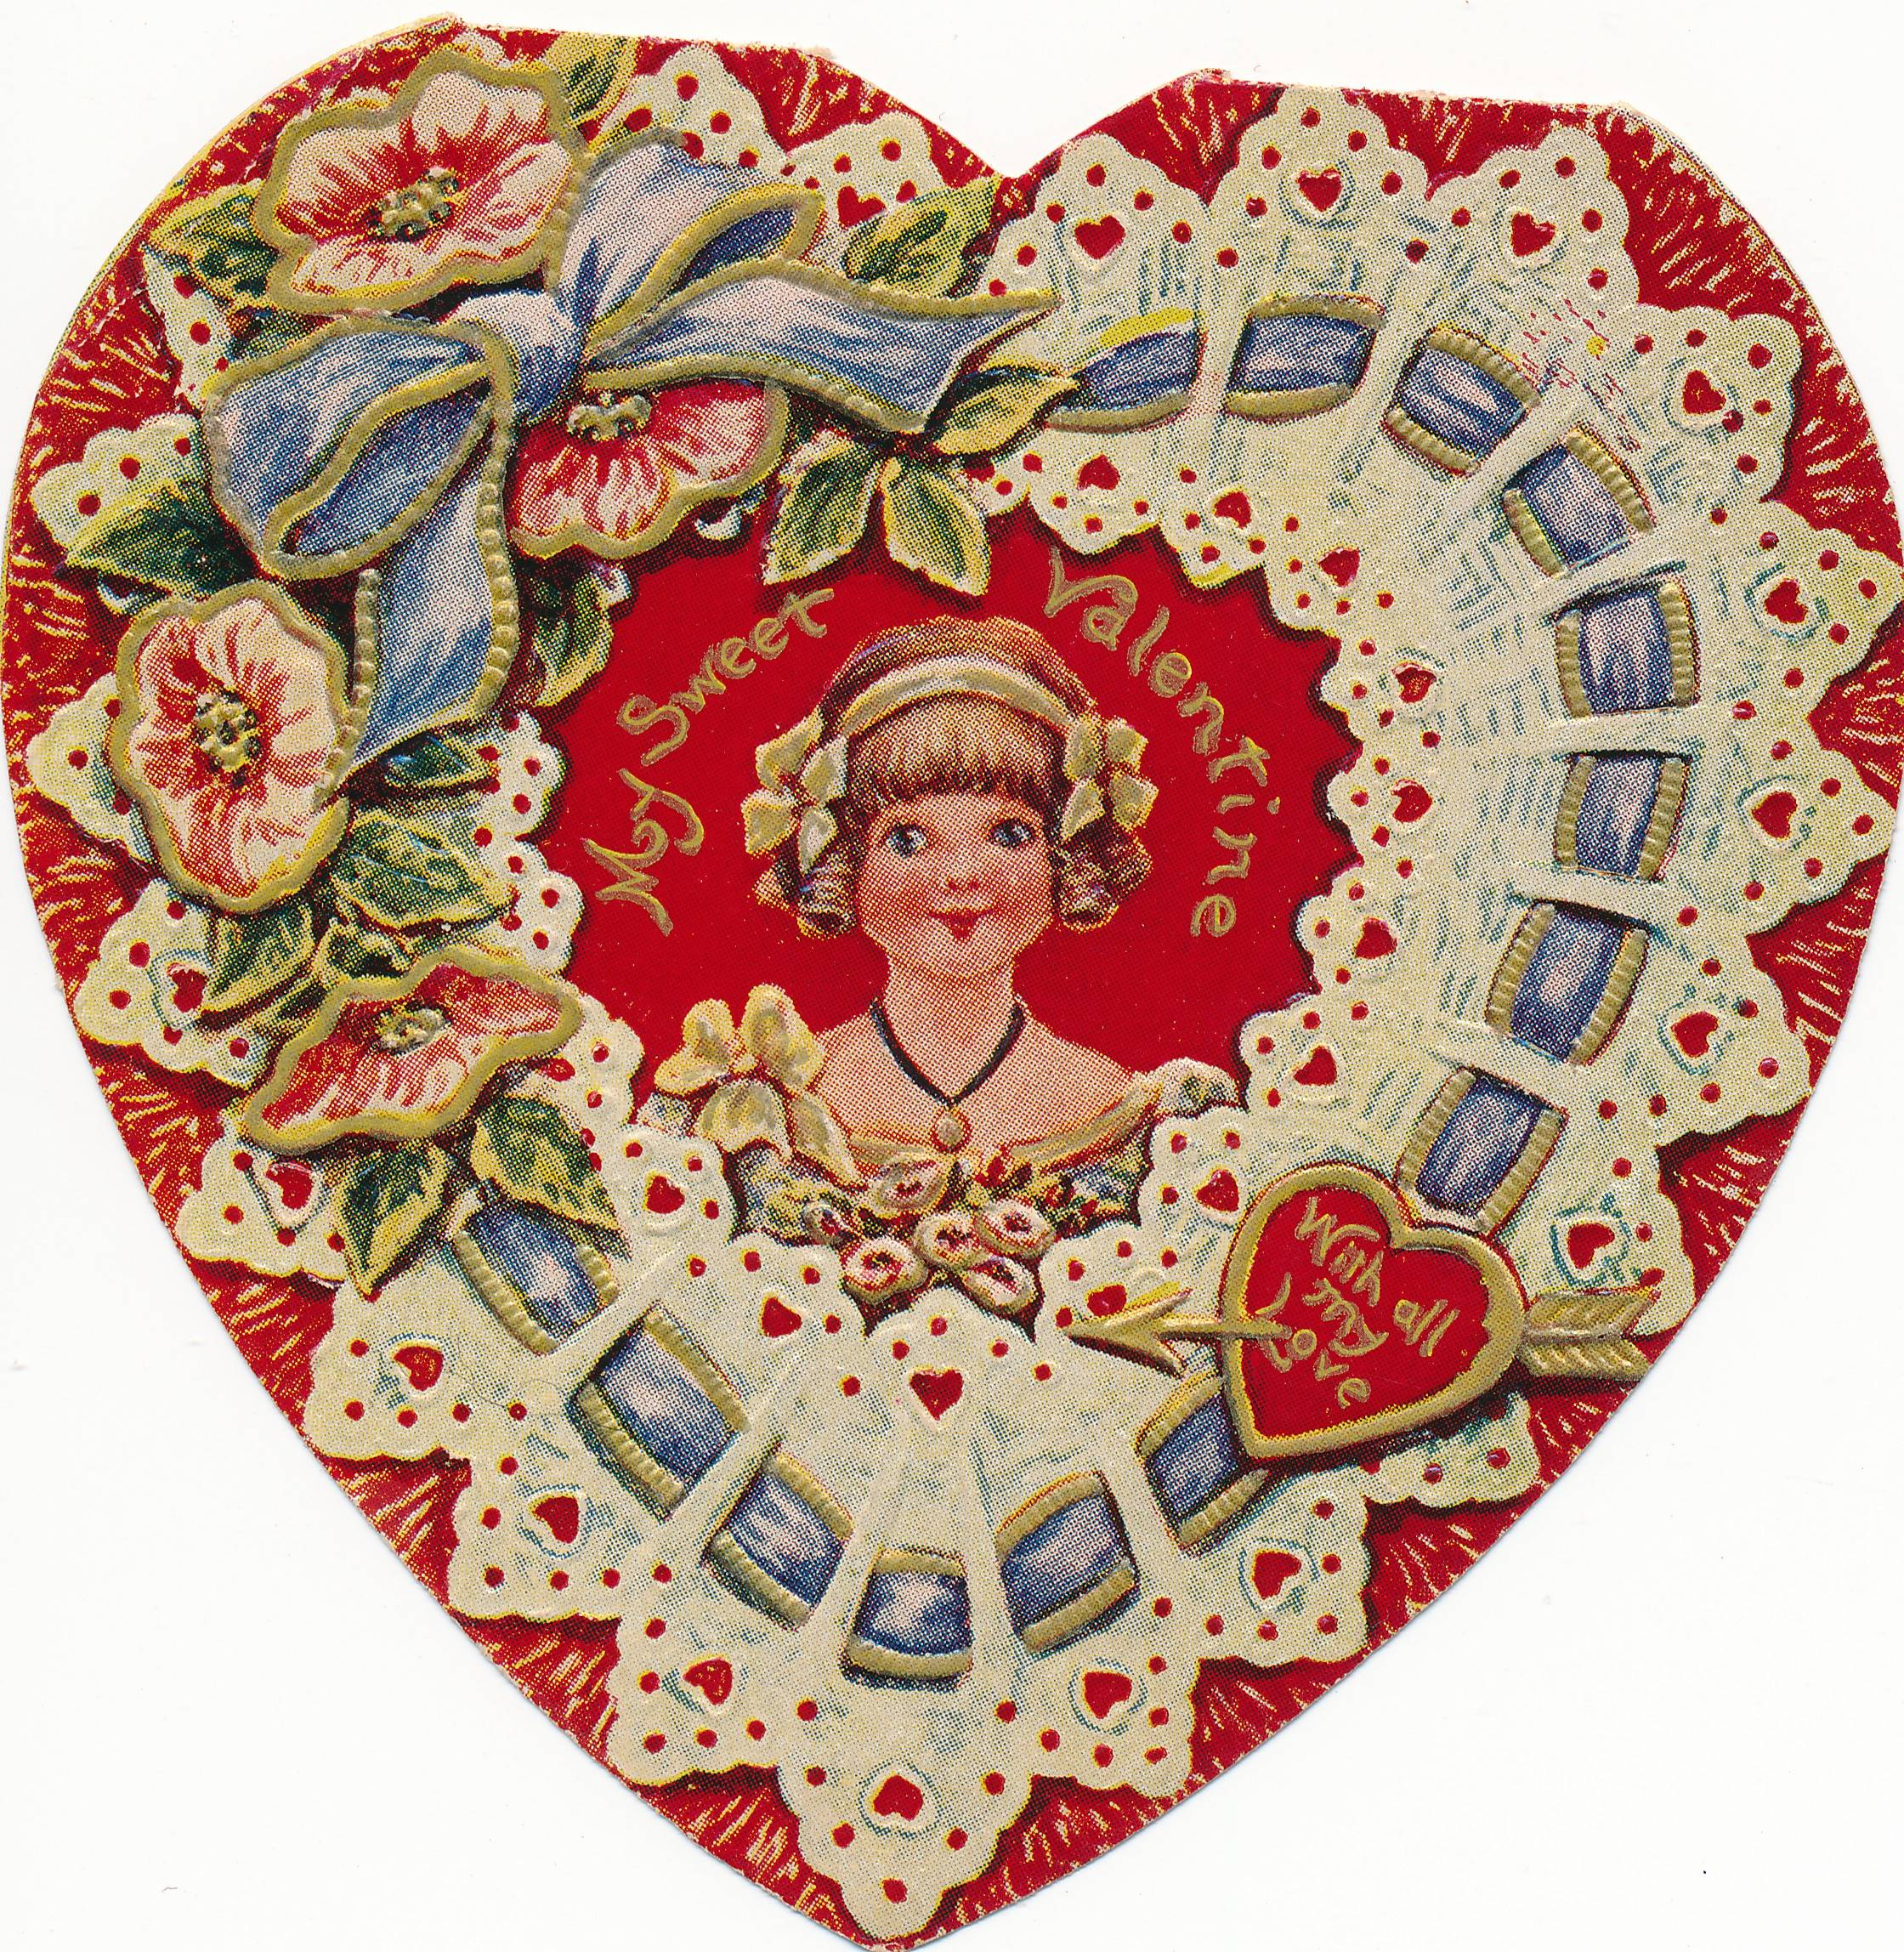 This Valentine and many others from the era were donated to the museum from the estate of Bartlett residents Harris and Pearl (nee Hoth) Gates. The greeting, circa 1932, was given to her lifelong and area friend, Eloise Leiseberg, by siblings and Ontarioville residents James and Lois Nesler. The inside features a cherub and sentiment expressing a sweet message.